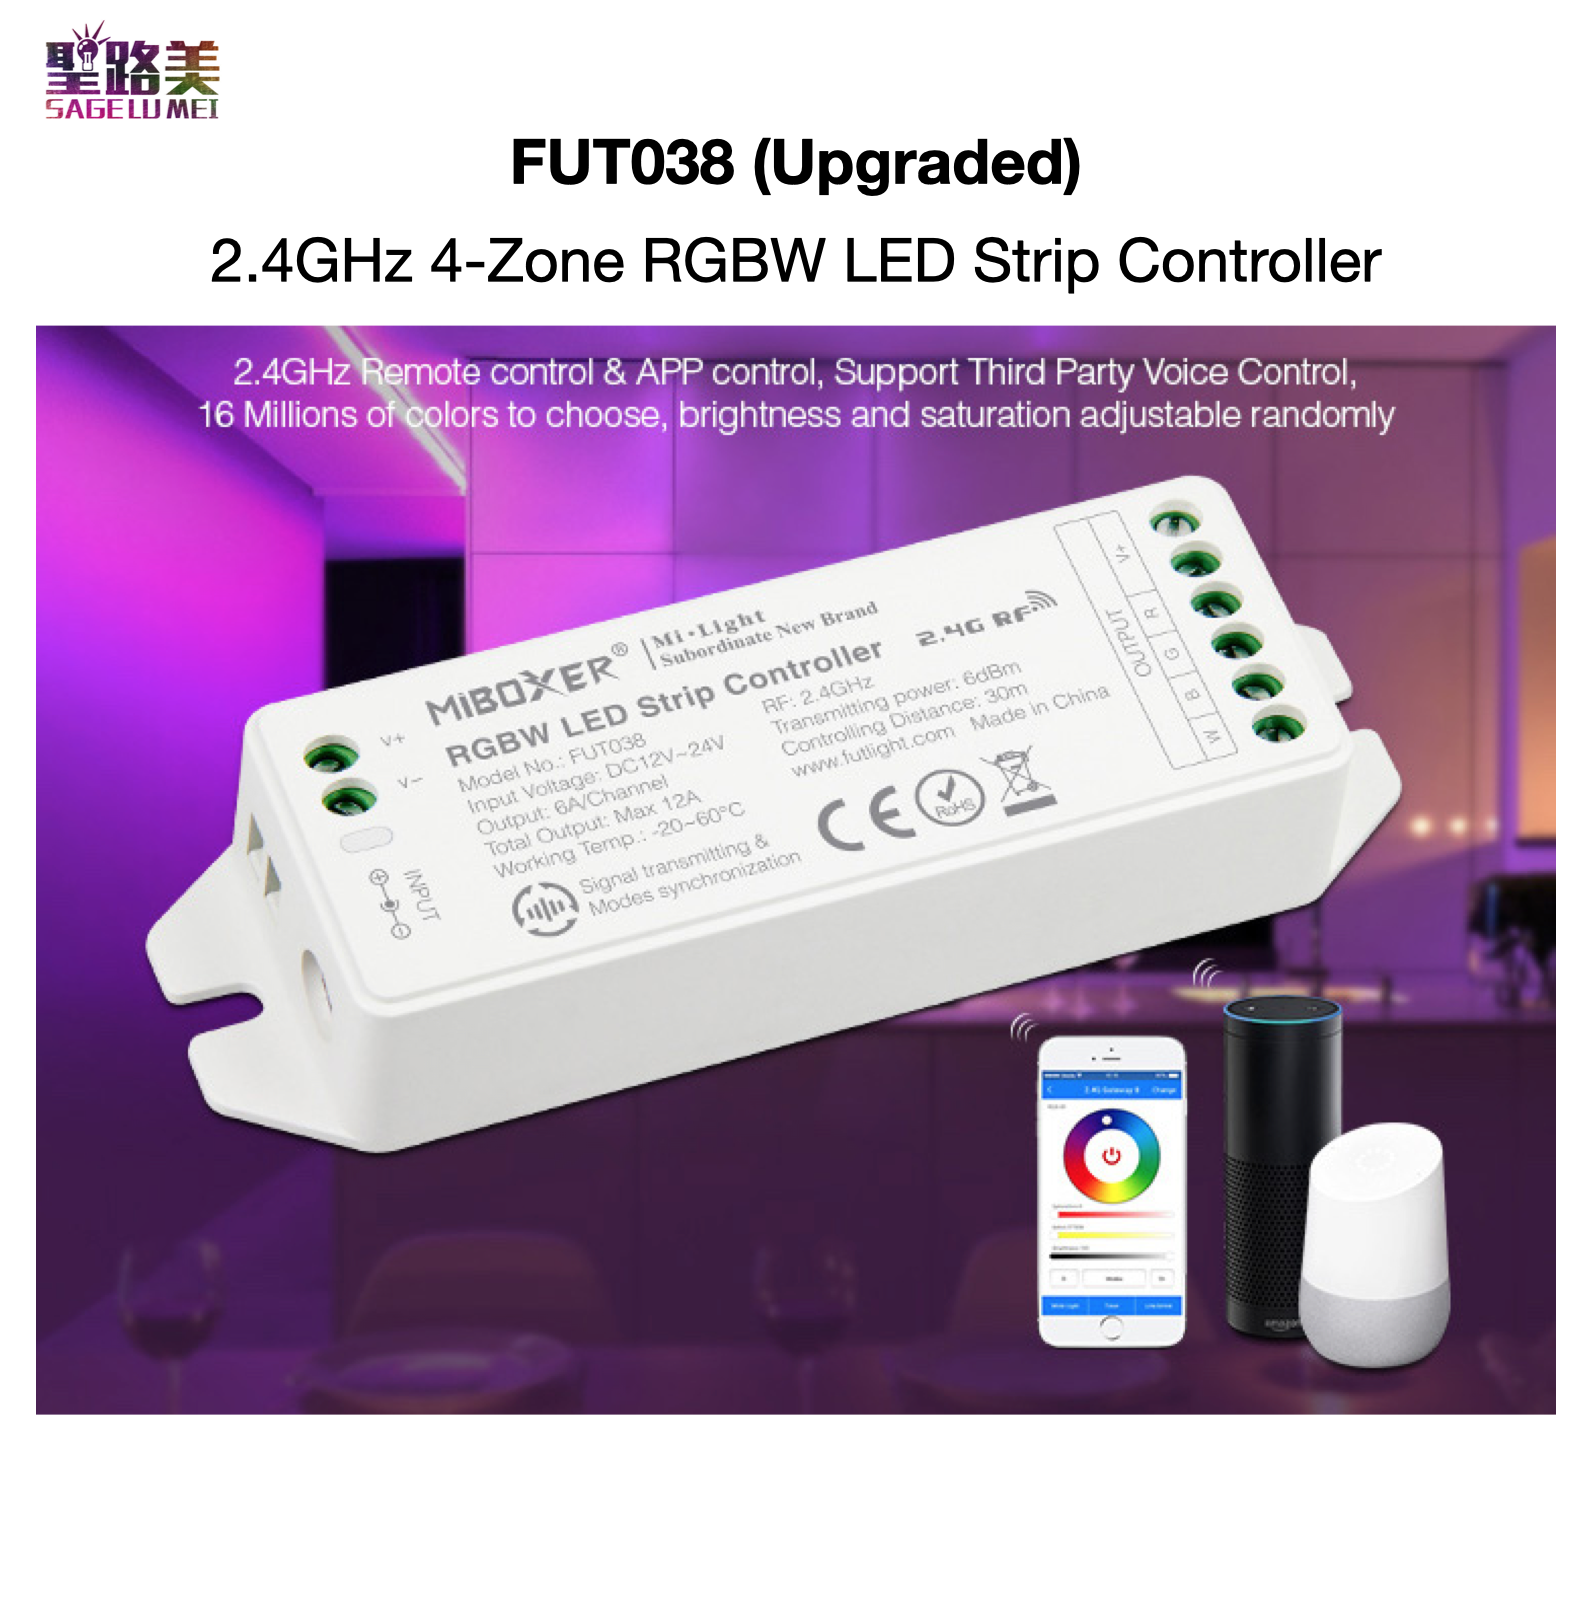 FUT038 (Upgraded) 2.4GHz RGBW LED Strip Controller DC12V~24V Smartphone APP / RF / Third Party Voice Control MiBOXER Mi-Light